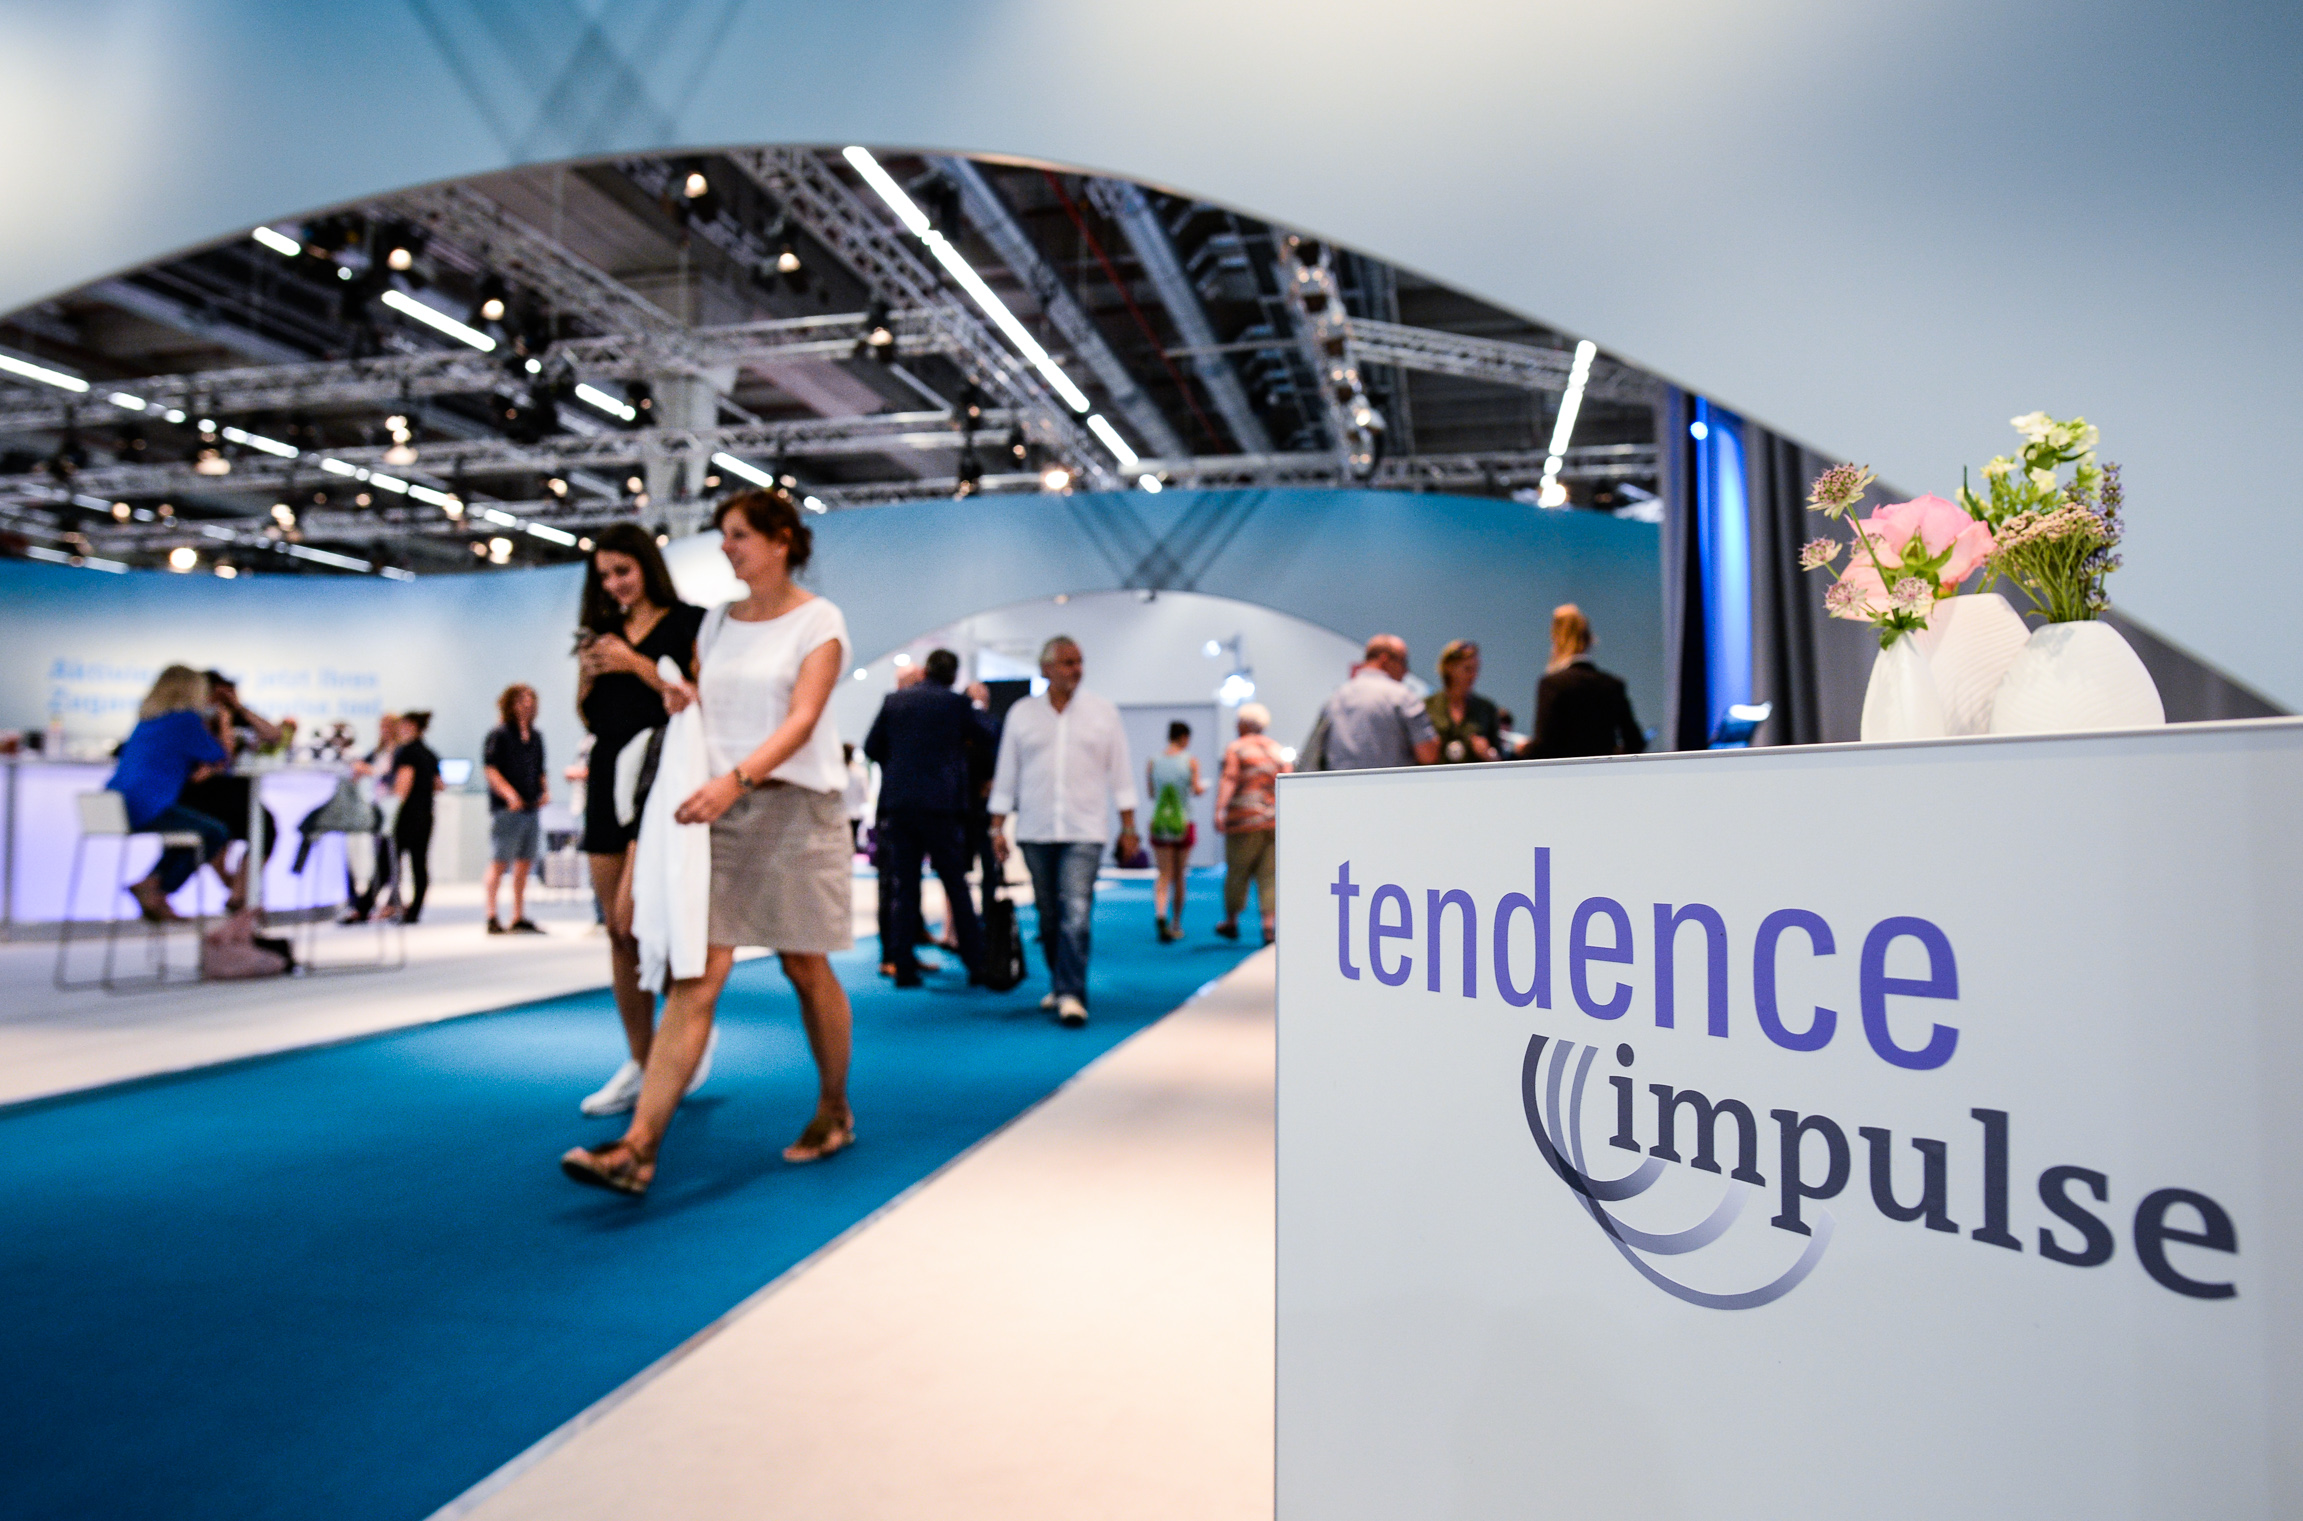 Tendence.Impulse